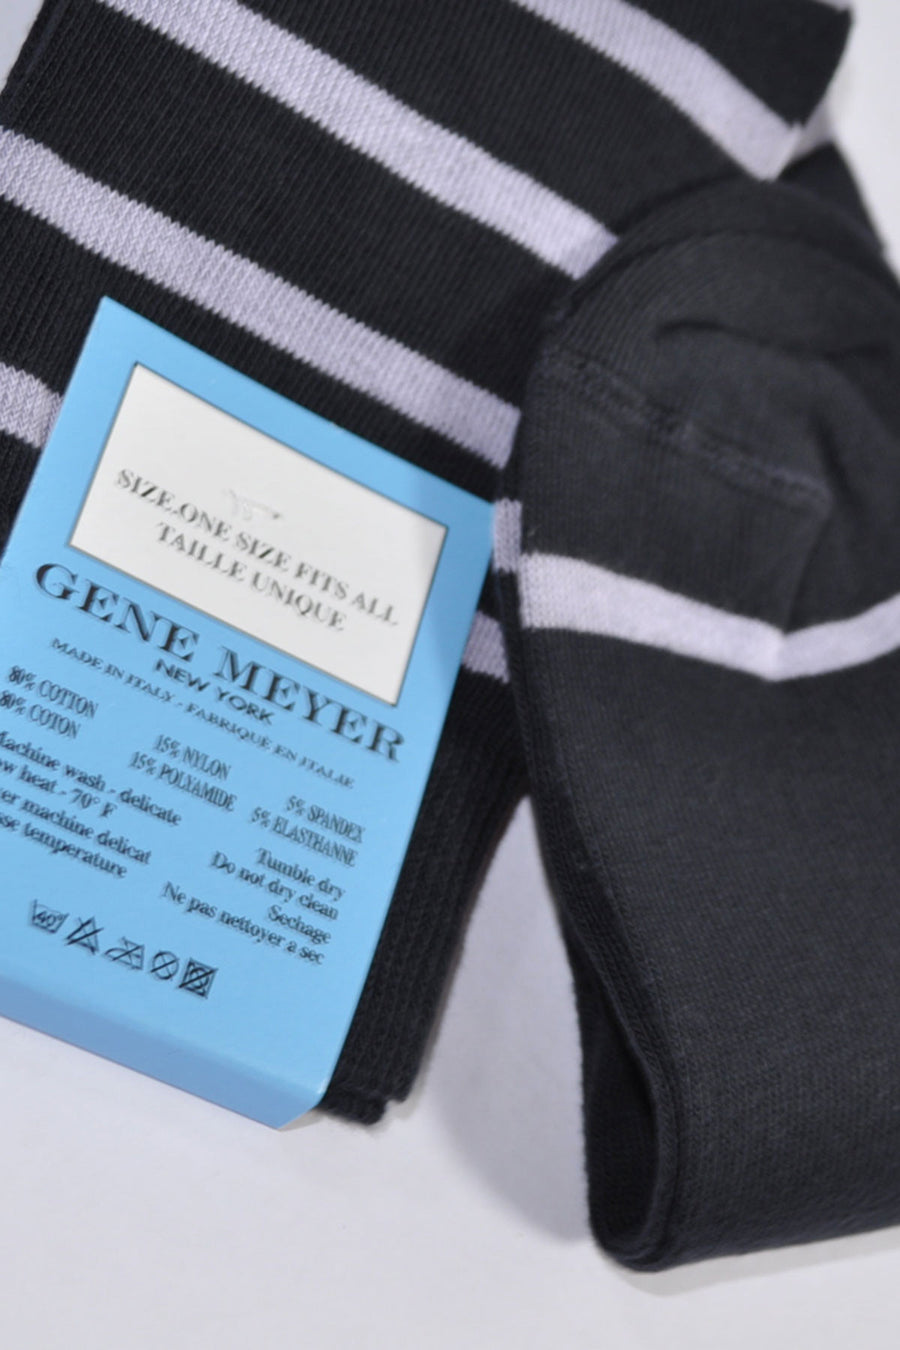 Gene Meyer Socks Black Lilac